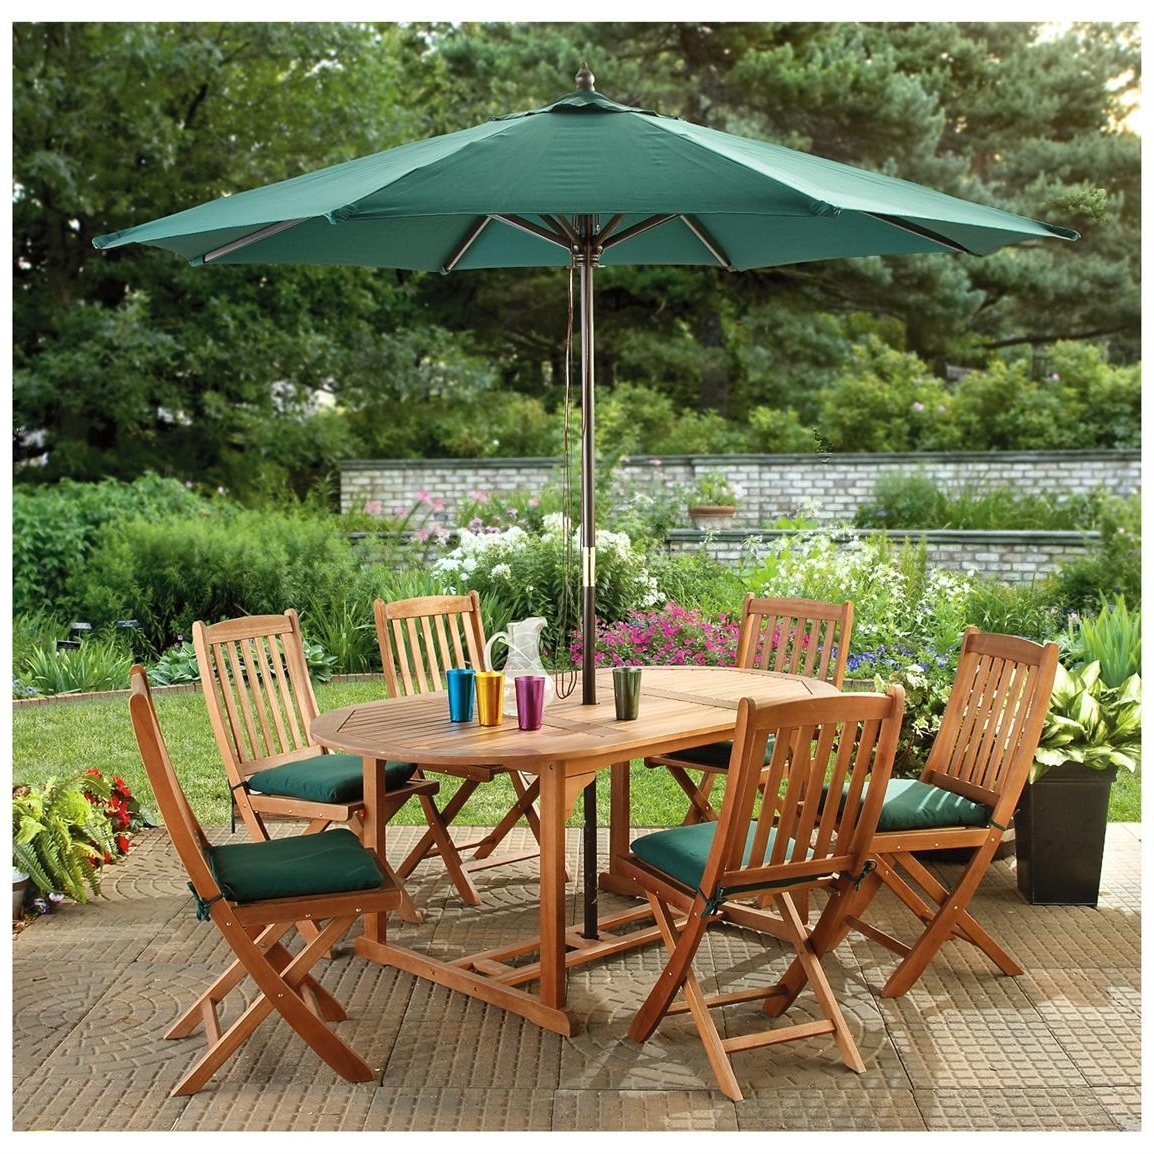 Best And Newest Patio: Amazing Small Patio Table With Umbrella Outdoor Furniture Pertaining To Small Patio Tables With Umbrellas (View 6 of 20)